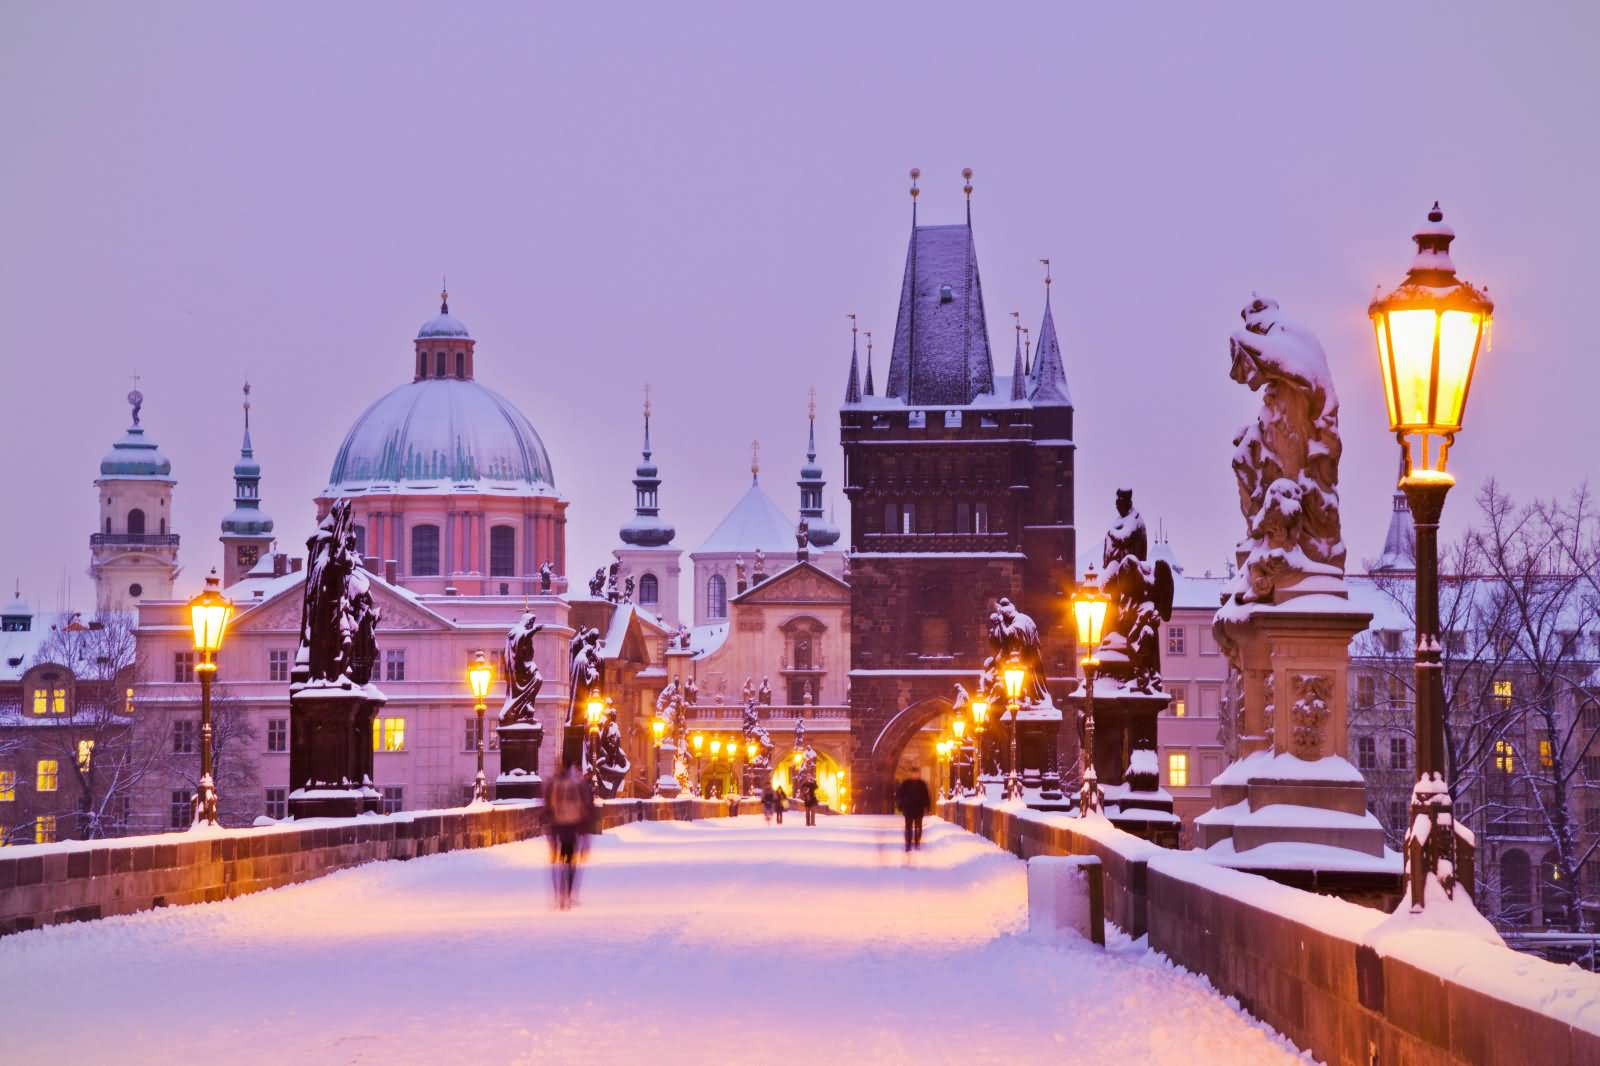 Charles Bridge Museum Prague, 20 Beautiful Charles Bridge During Winter Pictures And Photos